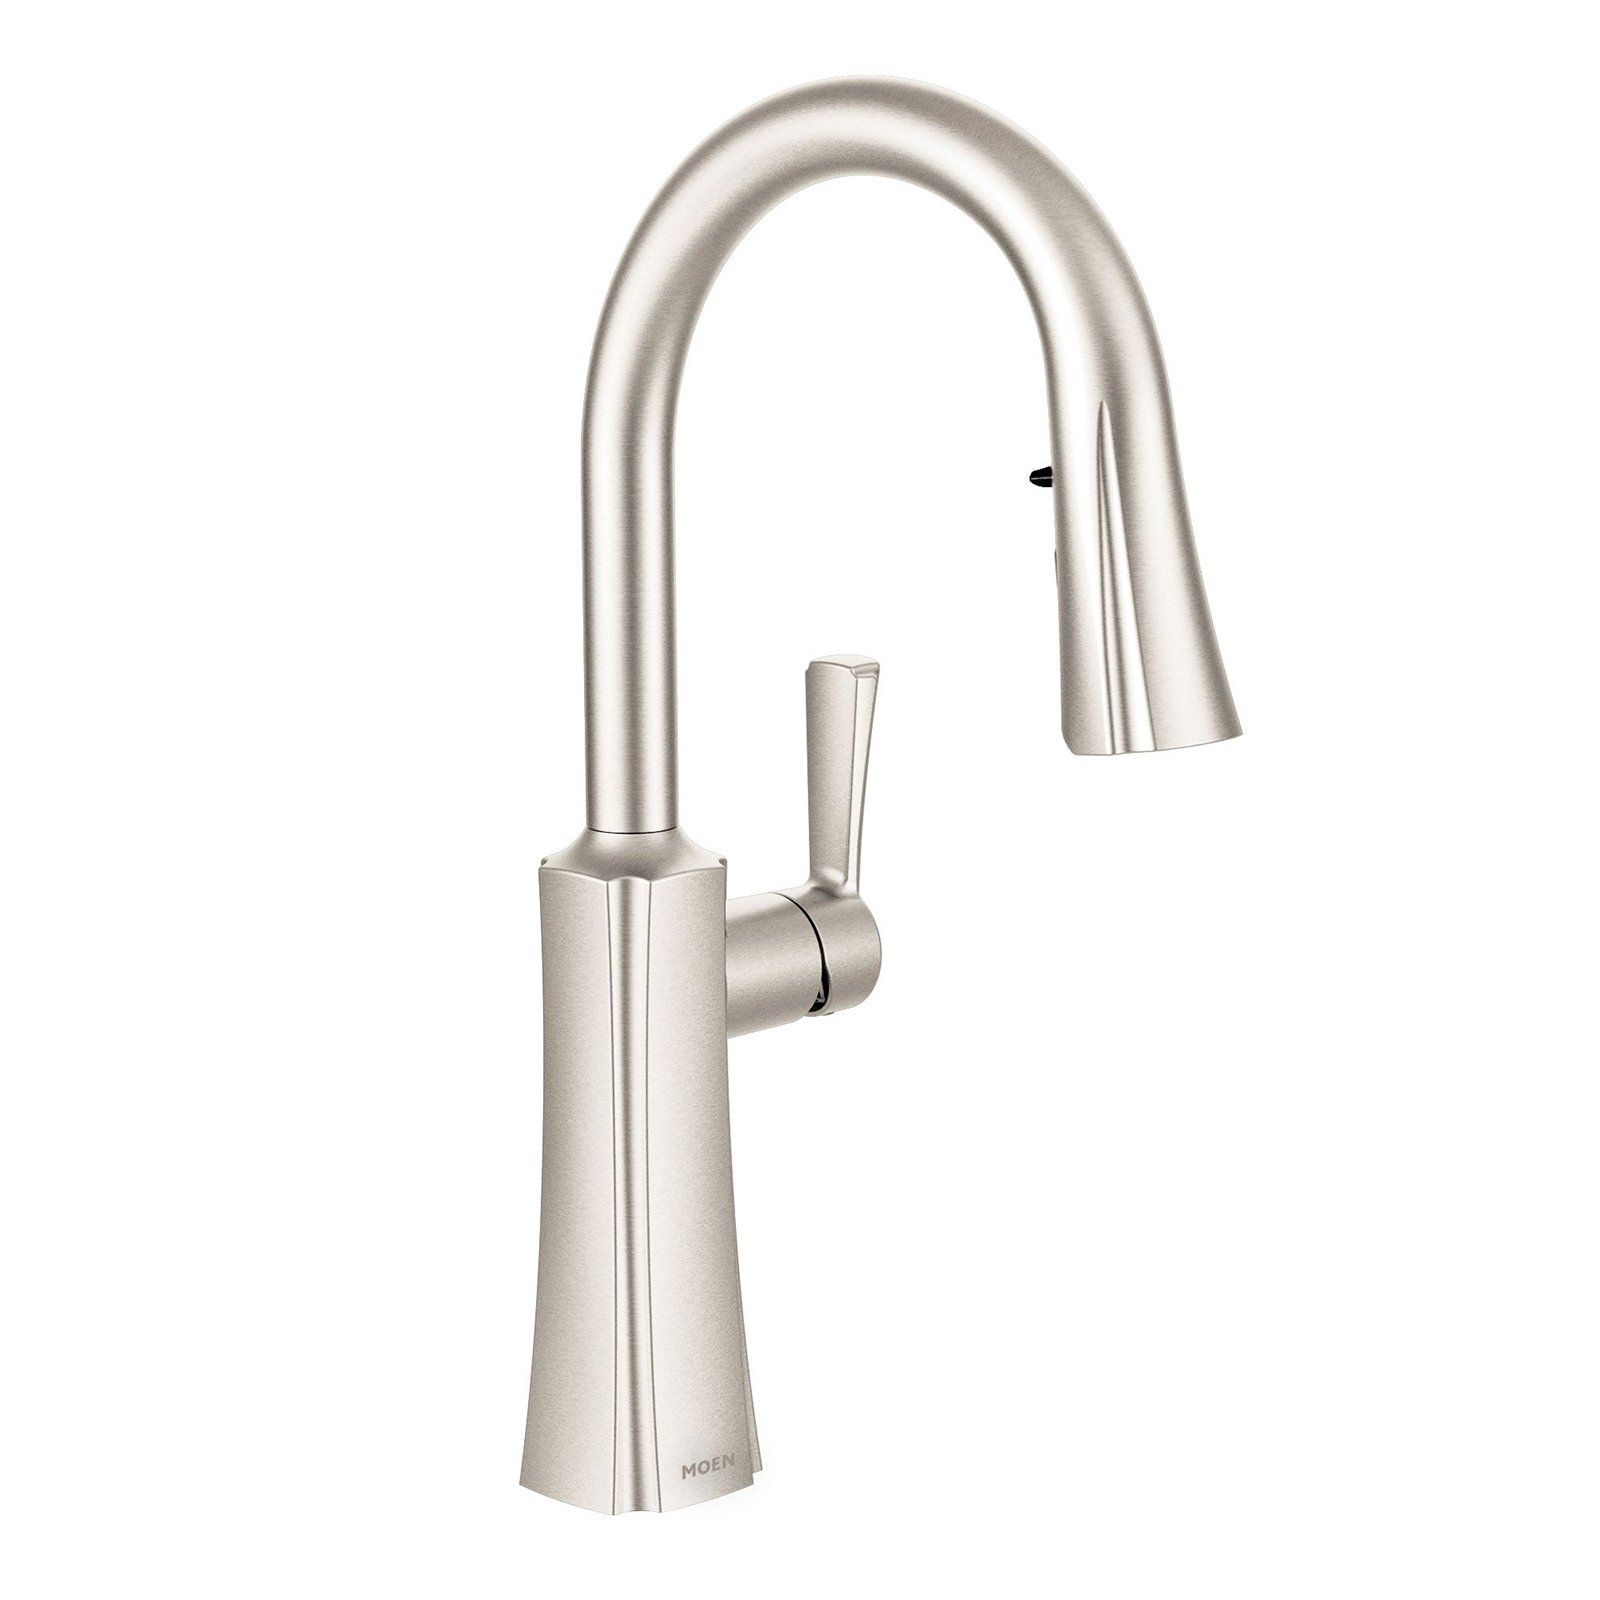 Moen Etch S72608srs Single Handle High Arc Pull Down Kitchen